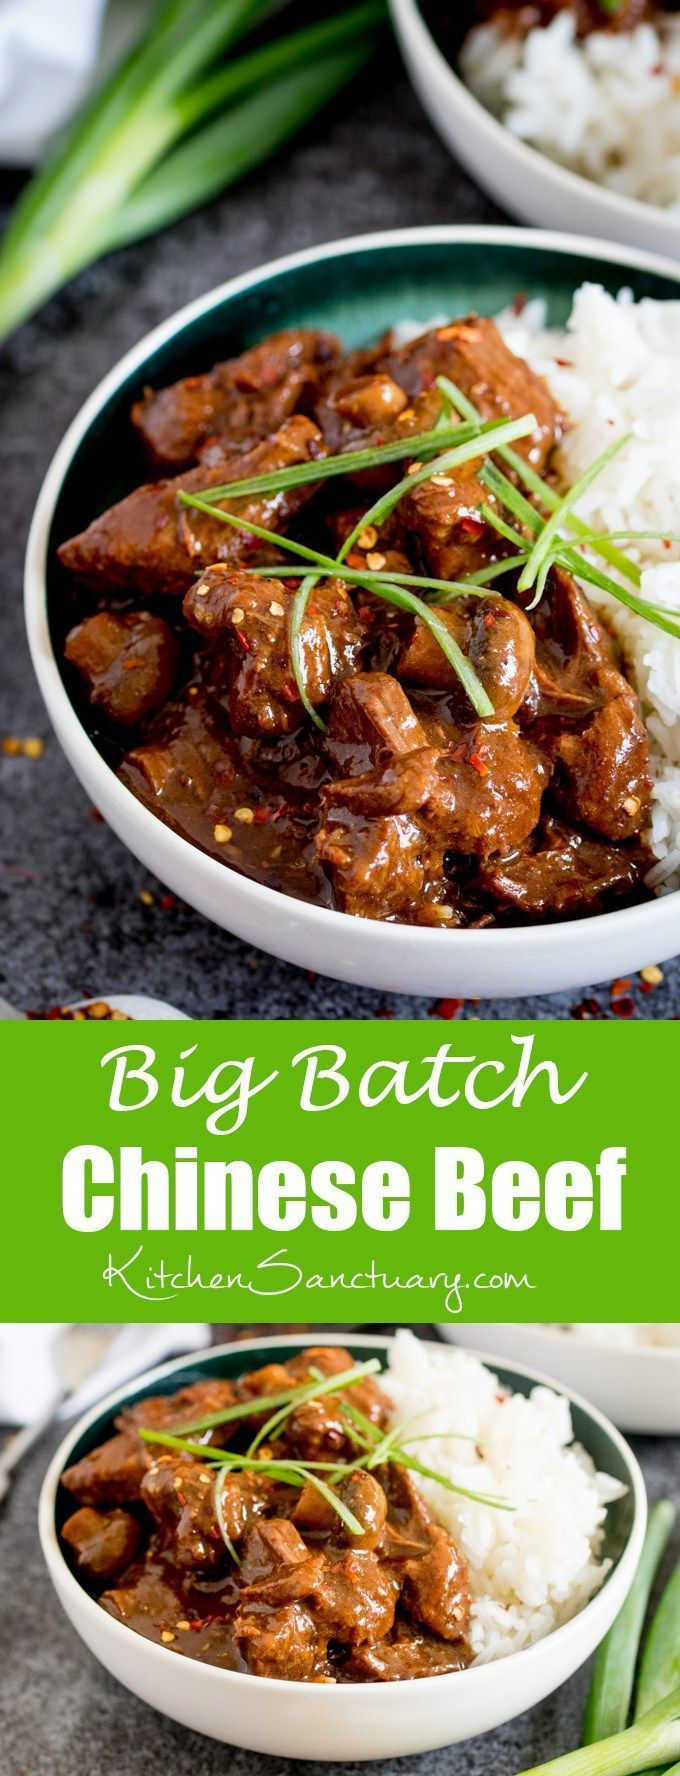 Big Batch Chinese Beef - A tasty, make-ahead meal of slow-cooked saucy Chinese…